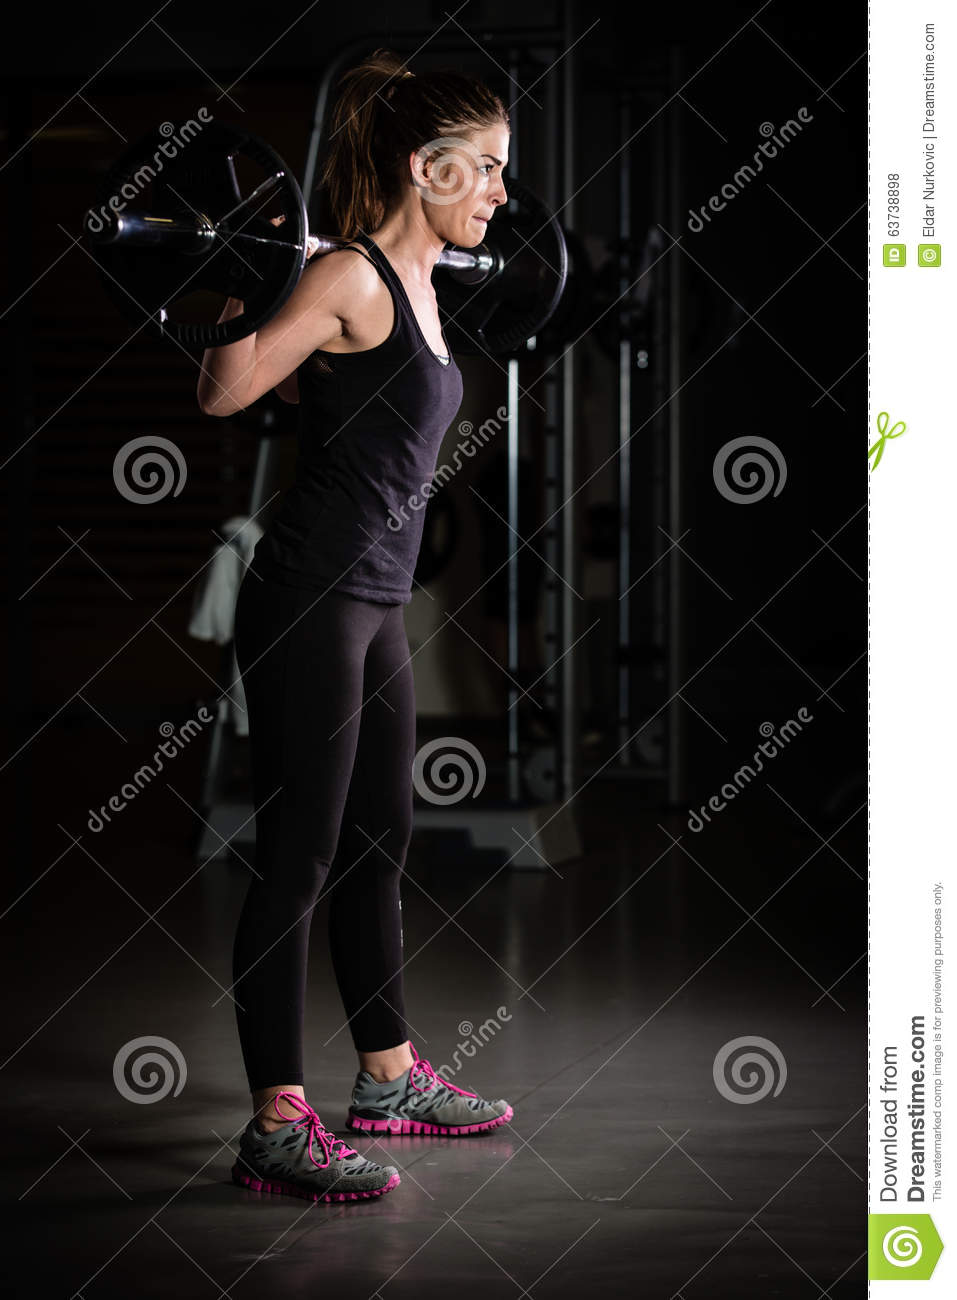 Woman weight training at gym.Devoted body builder girl lifting weights in gym and doing squats low key photo